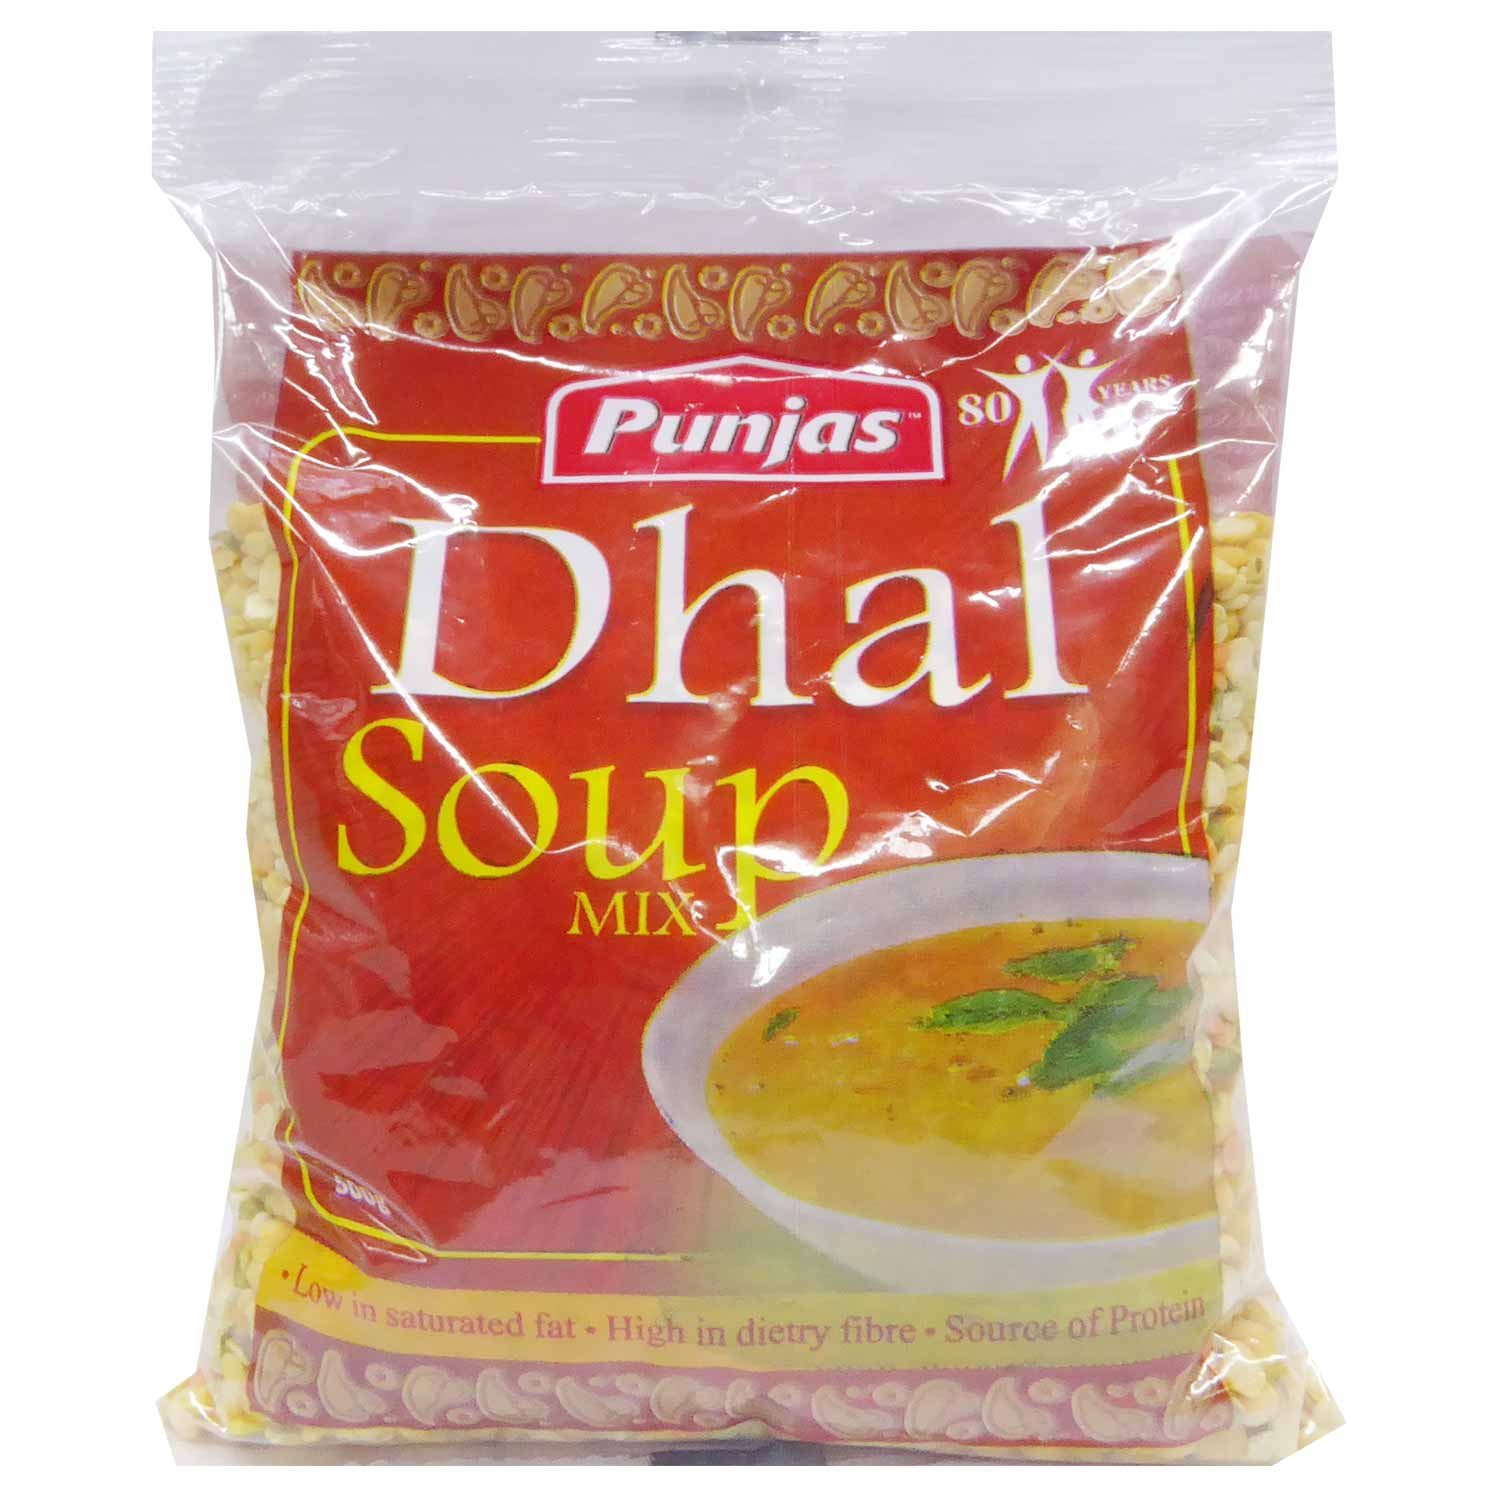 Punjas Dhal Soup Mix 500g